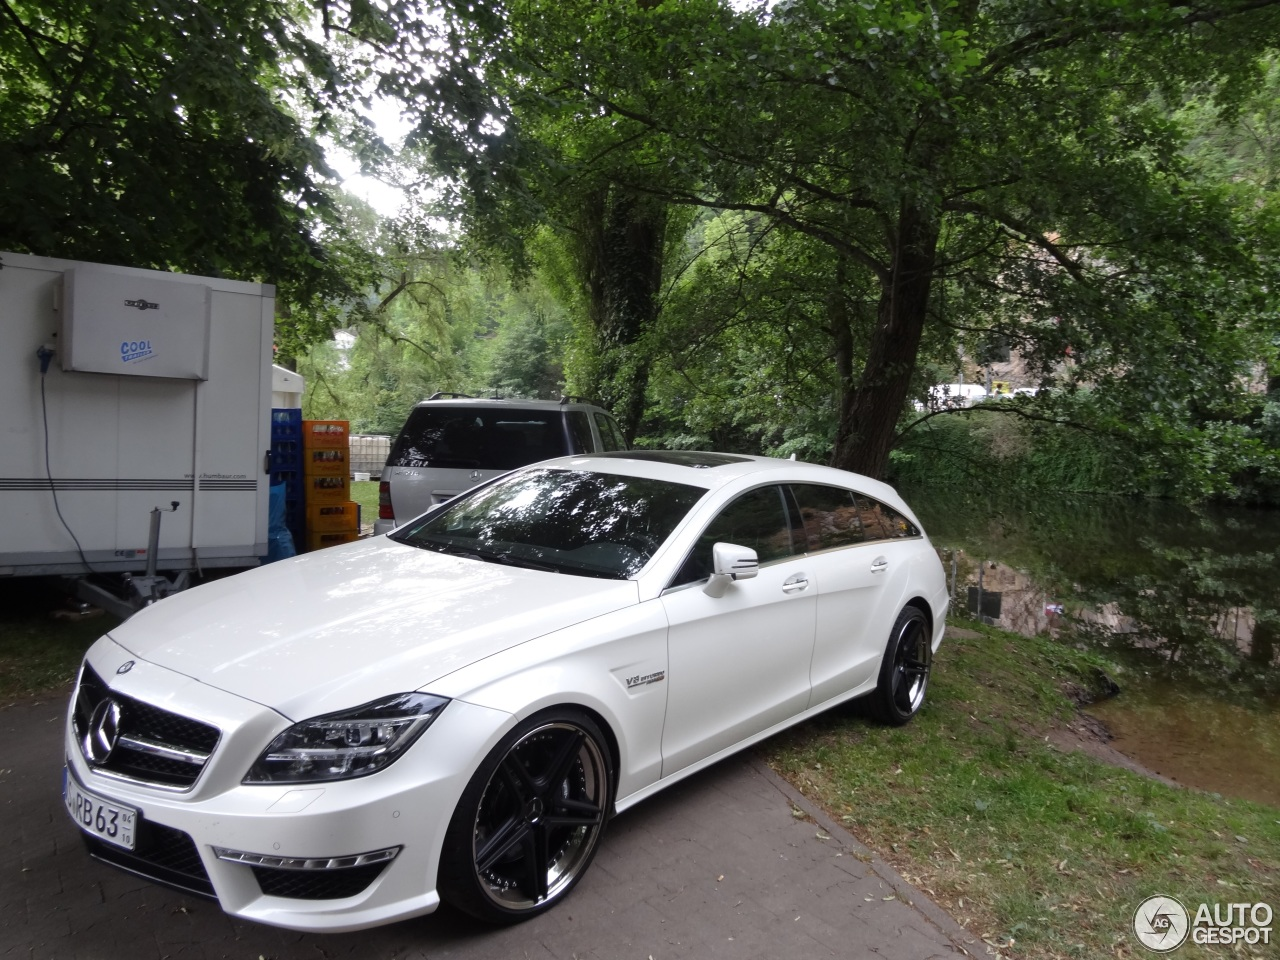 Mercedes benz cls 63 amg x218 shooting brake 25 june for 2017 amg cls 63 mercedes benz